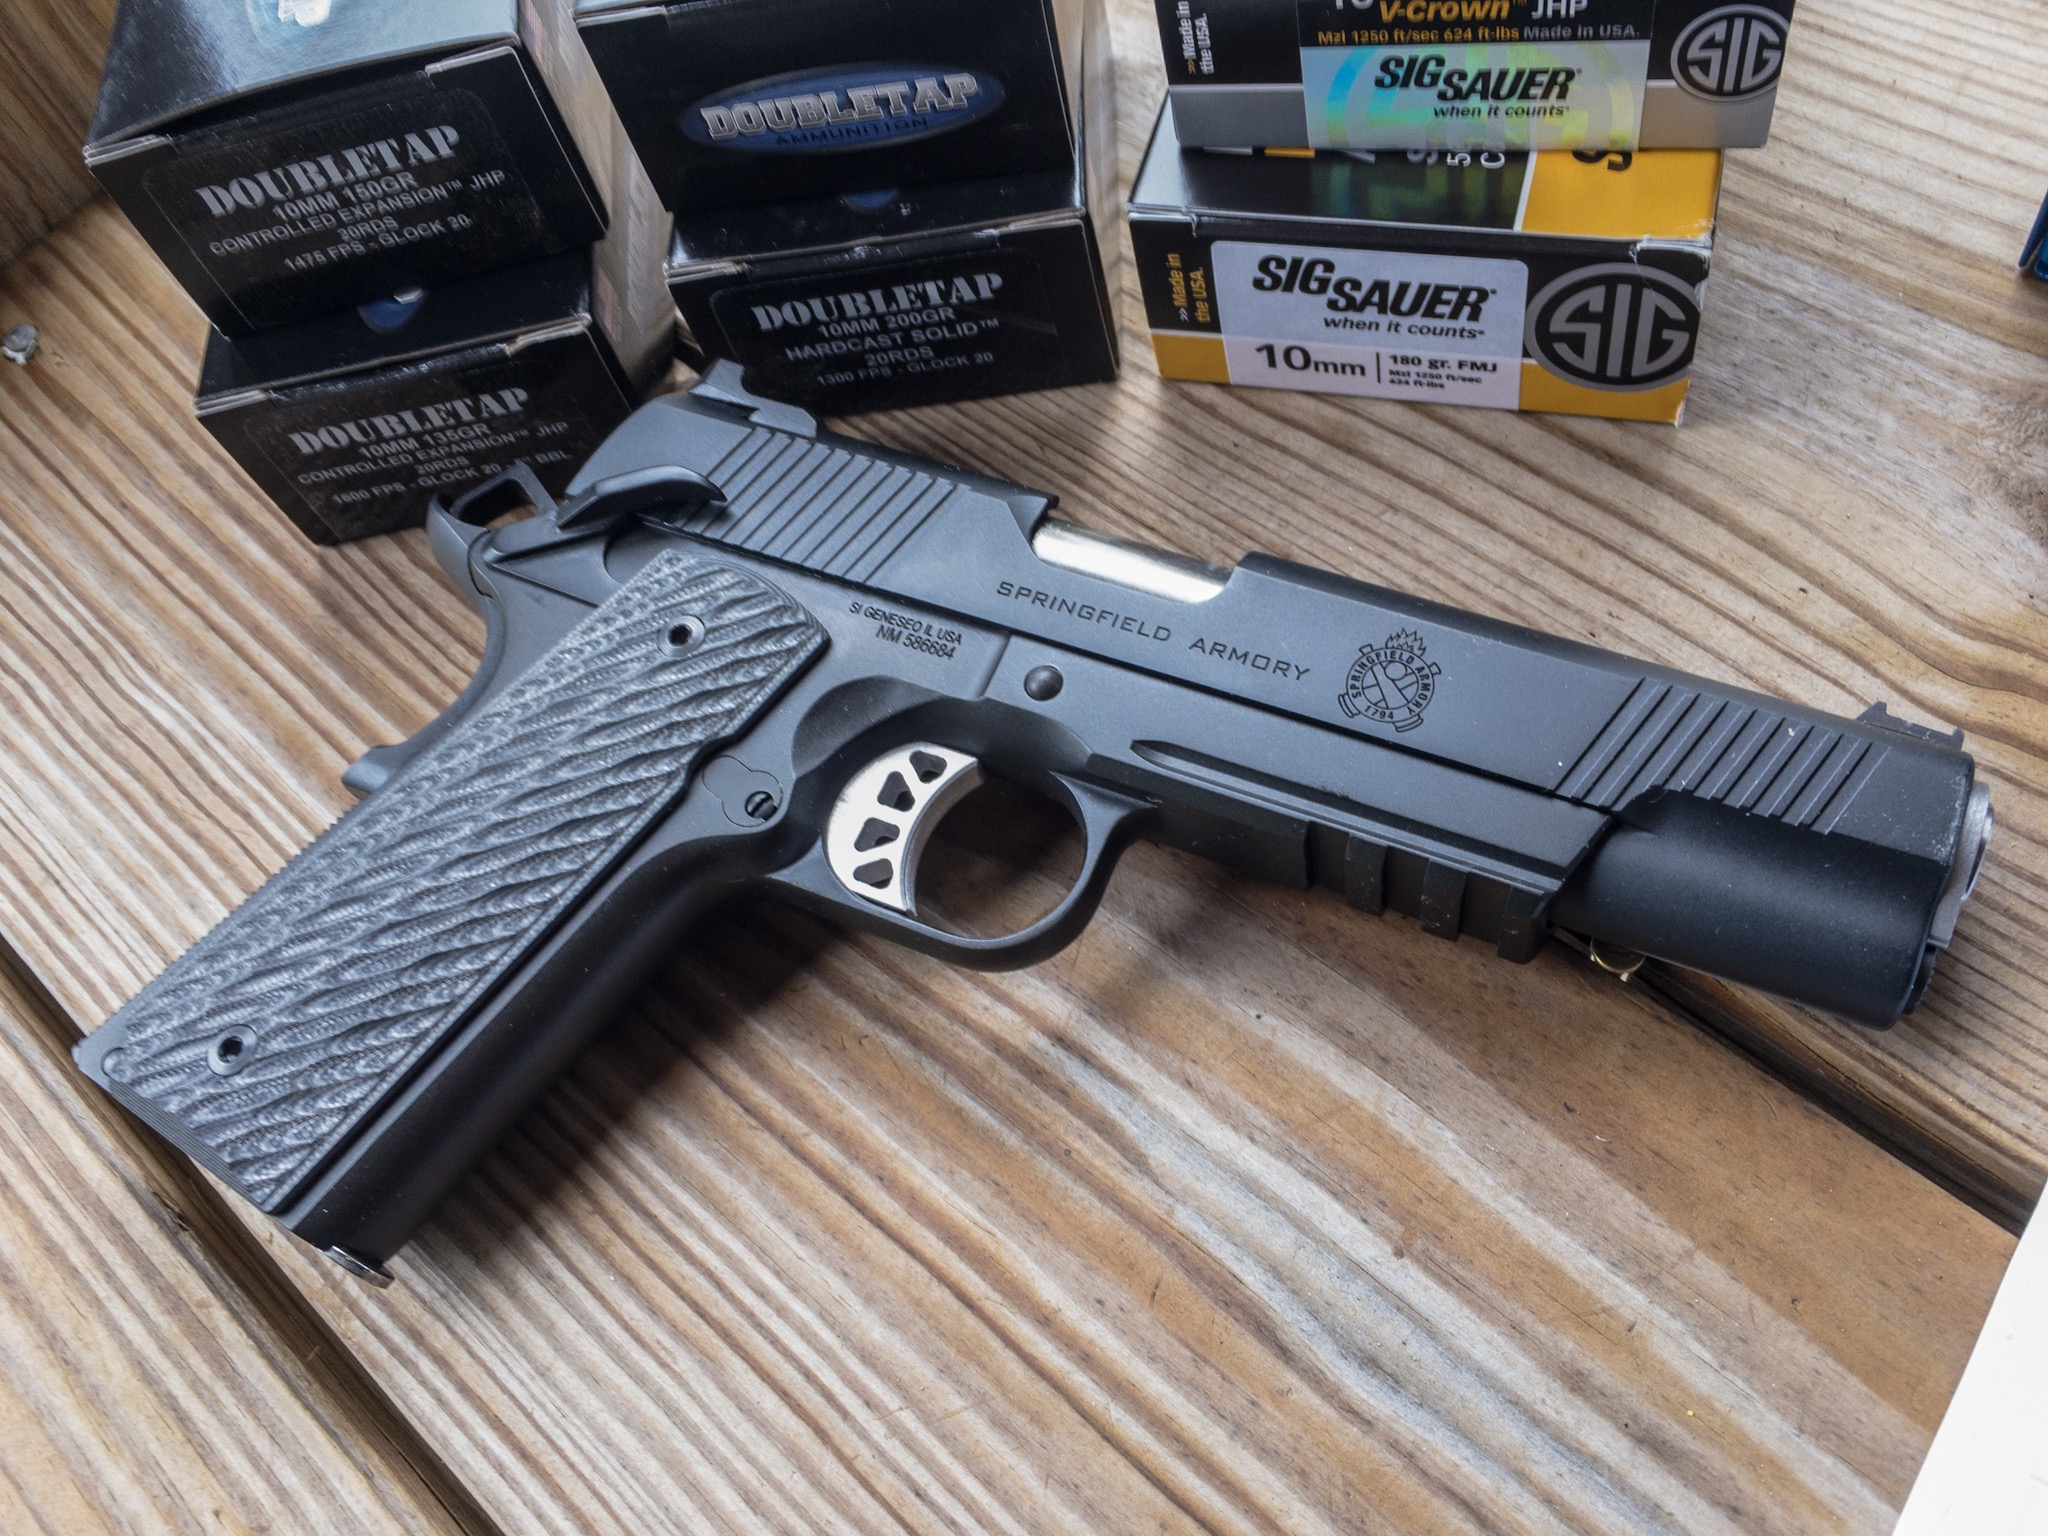 The new Springfield Armory 1911 Range Officer Elite Operator is decked out with all the quality gear, but is a 10mm.